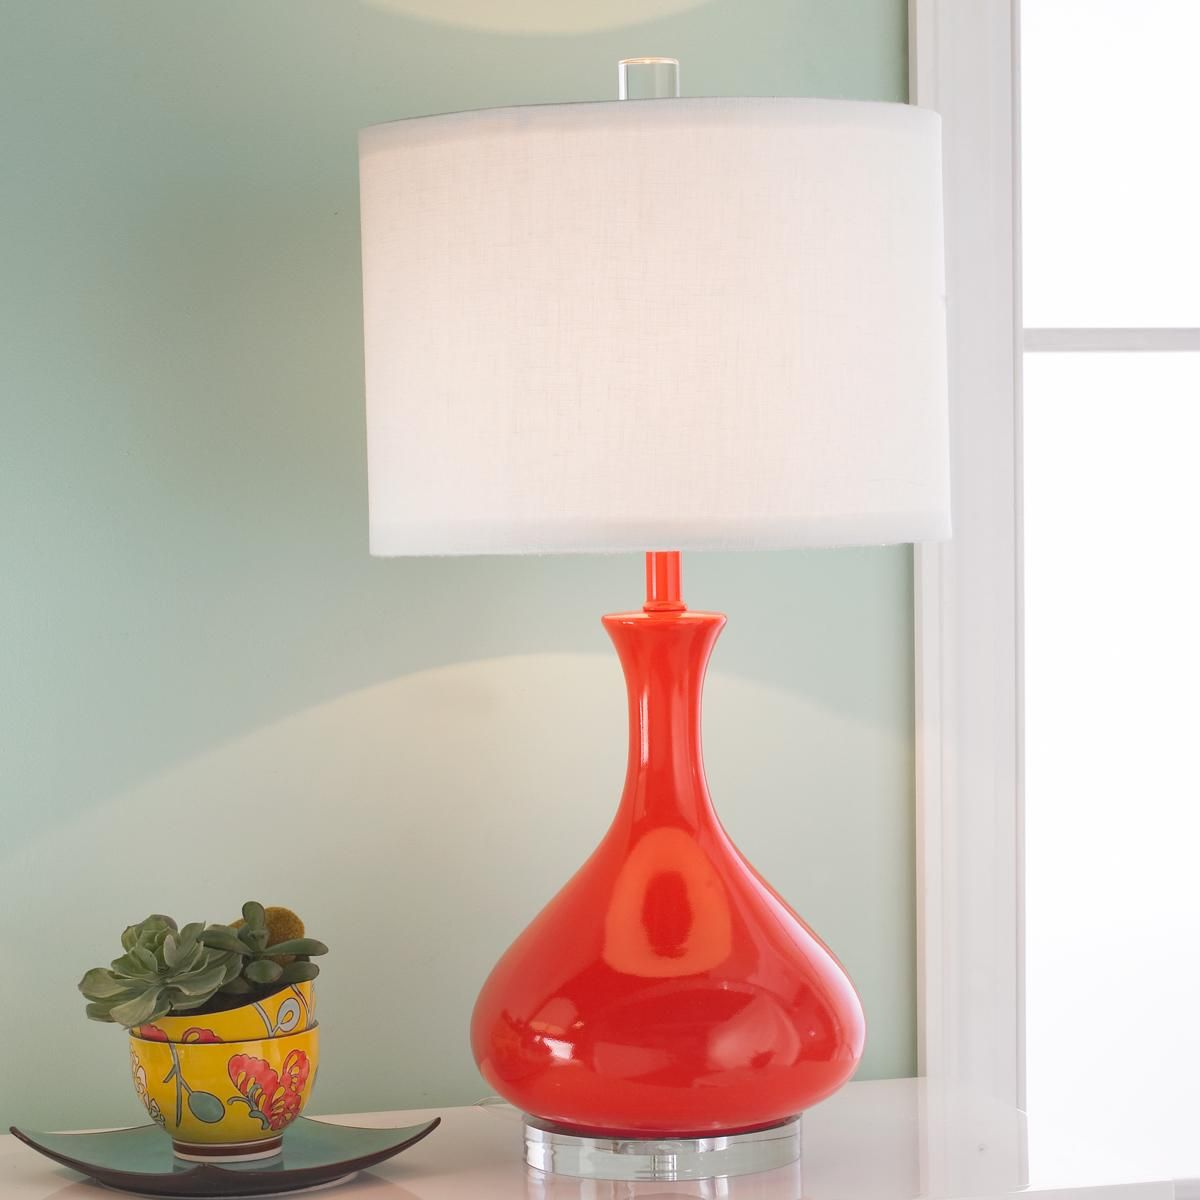 Bedroom Ceiling Lighting Ideas White Quilt Bedroom Ideas Blue Ceiling Bedroom Burnt Orange Bedroom Accessories: Ceramic Droplet Gourd Table Lamp